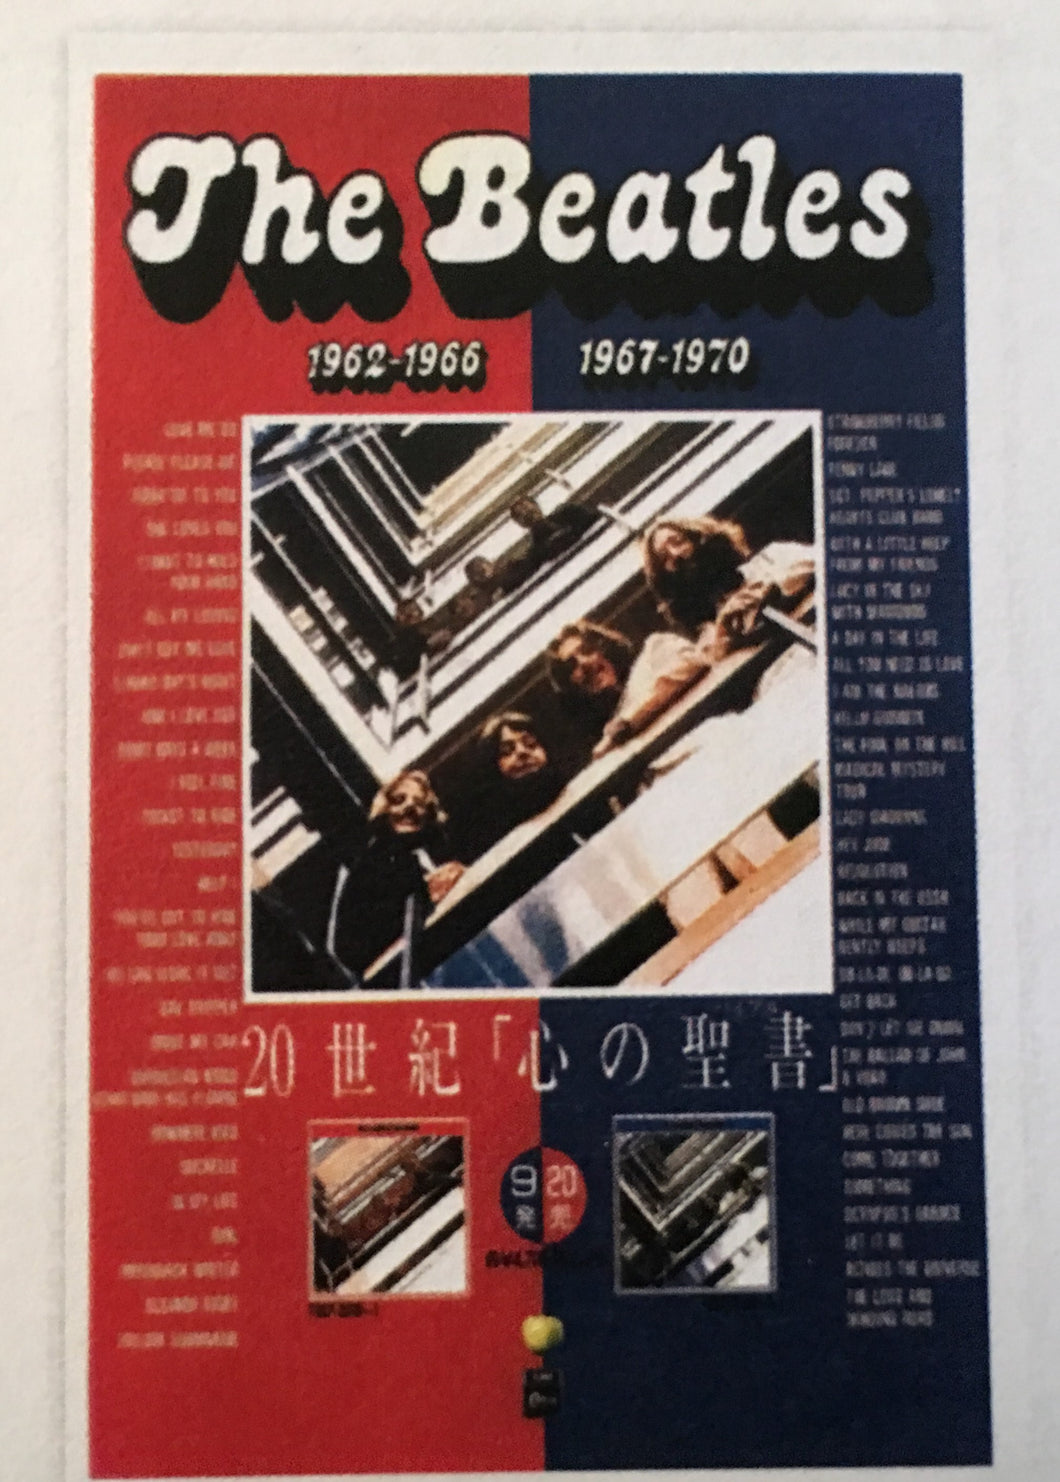 The Beatles 1962-66 and 1967-70 Print